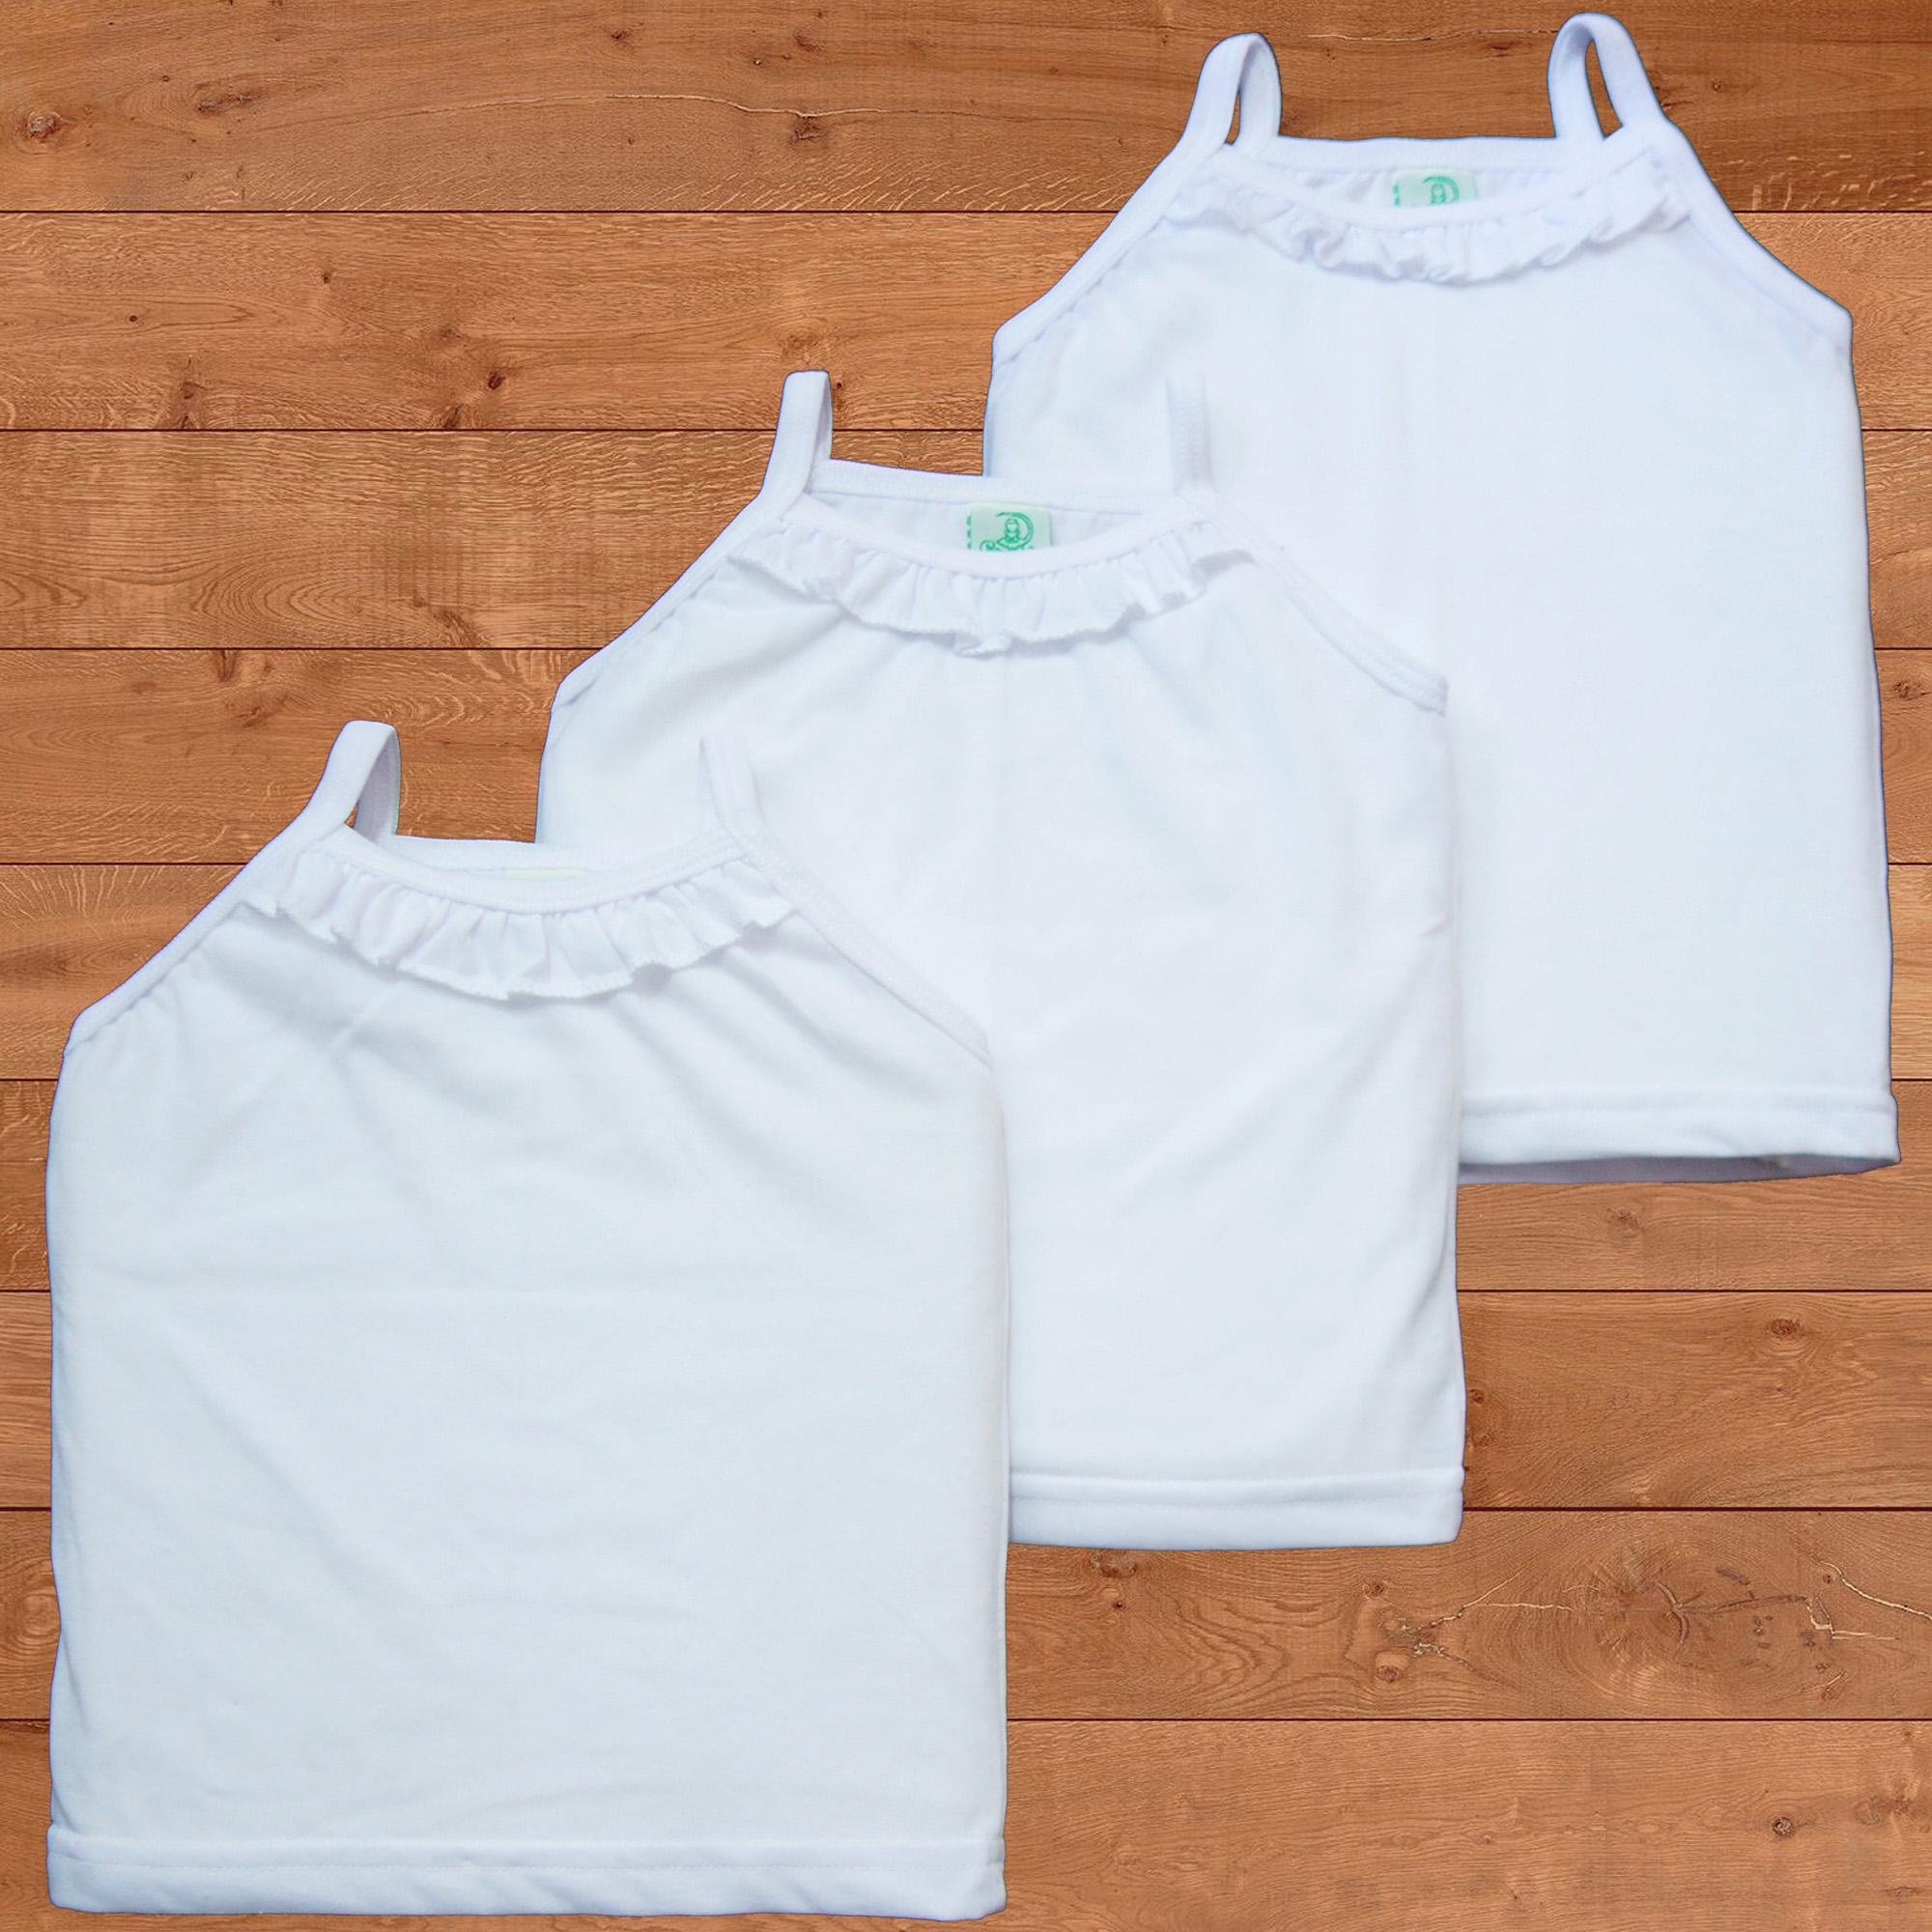 3dbc51b629a346 Girls Tank Tops for sale - Tank Tops for Baby Girls online brands ...